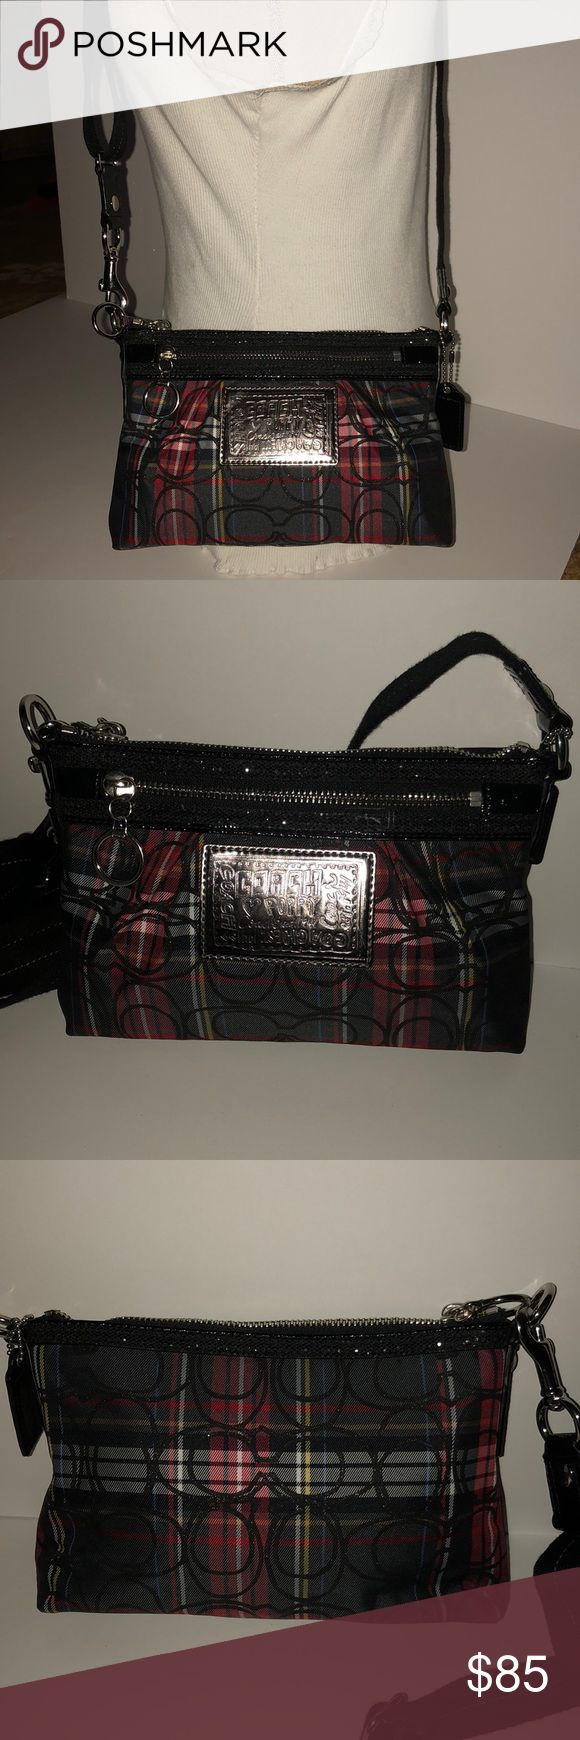 "Coach Poppy tartan plaid handbag This is a never used Coach Poppy Tartan plaid with sparkle black. Signature. Great for the holidays! Cross body style. 9""x 6"". Strap drop is 24"". Coach Bags Crossbody Bags"